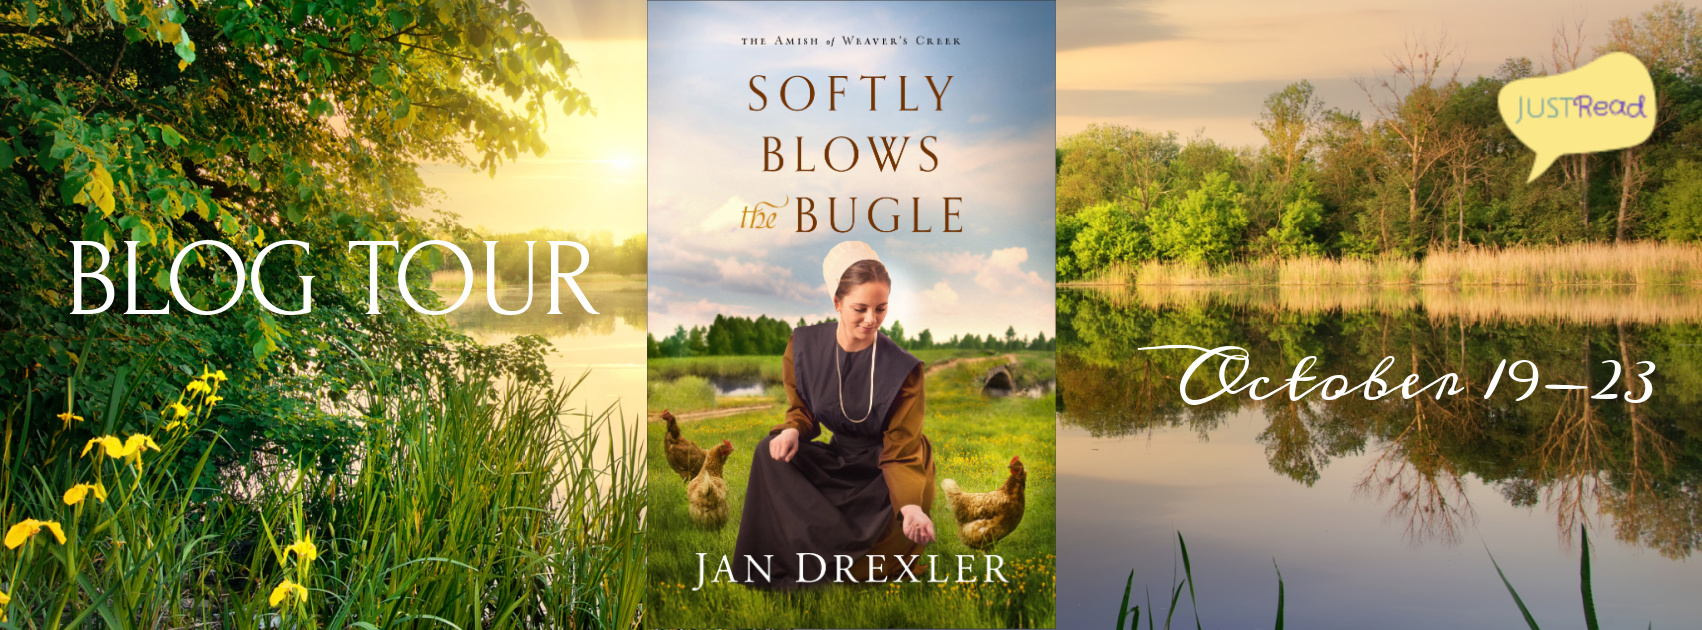 Welcome to the Softly Blows the Bugle Blog Tour & Giveaway!